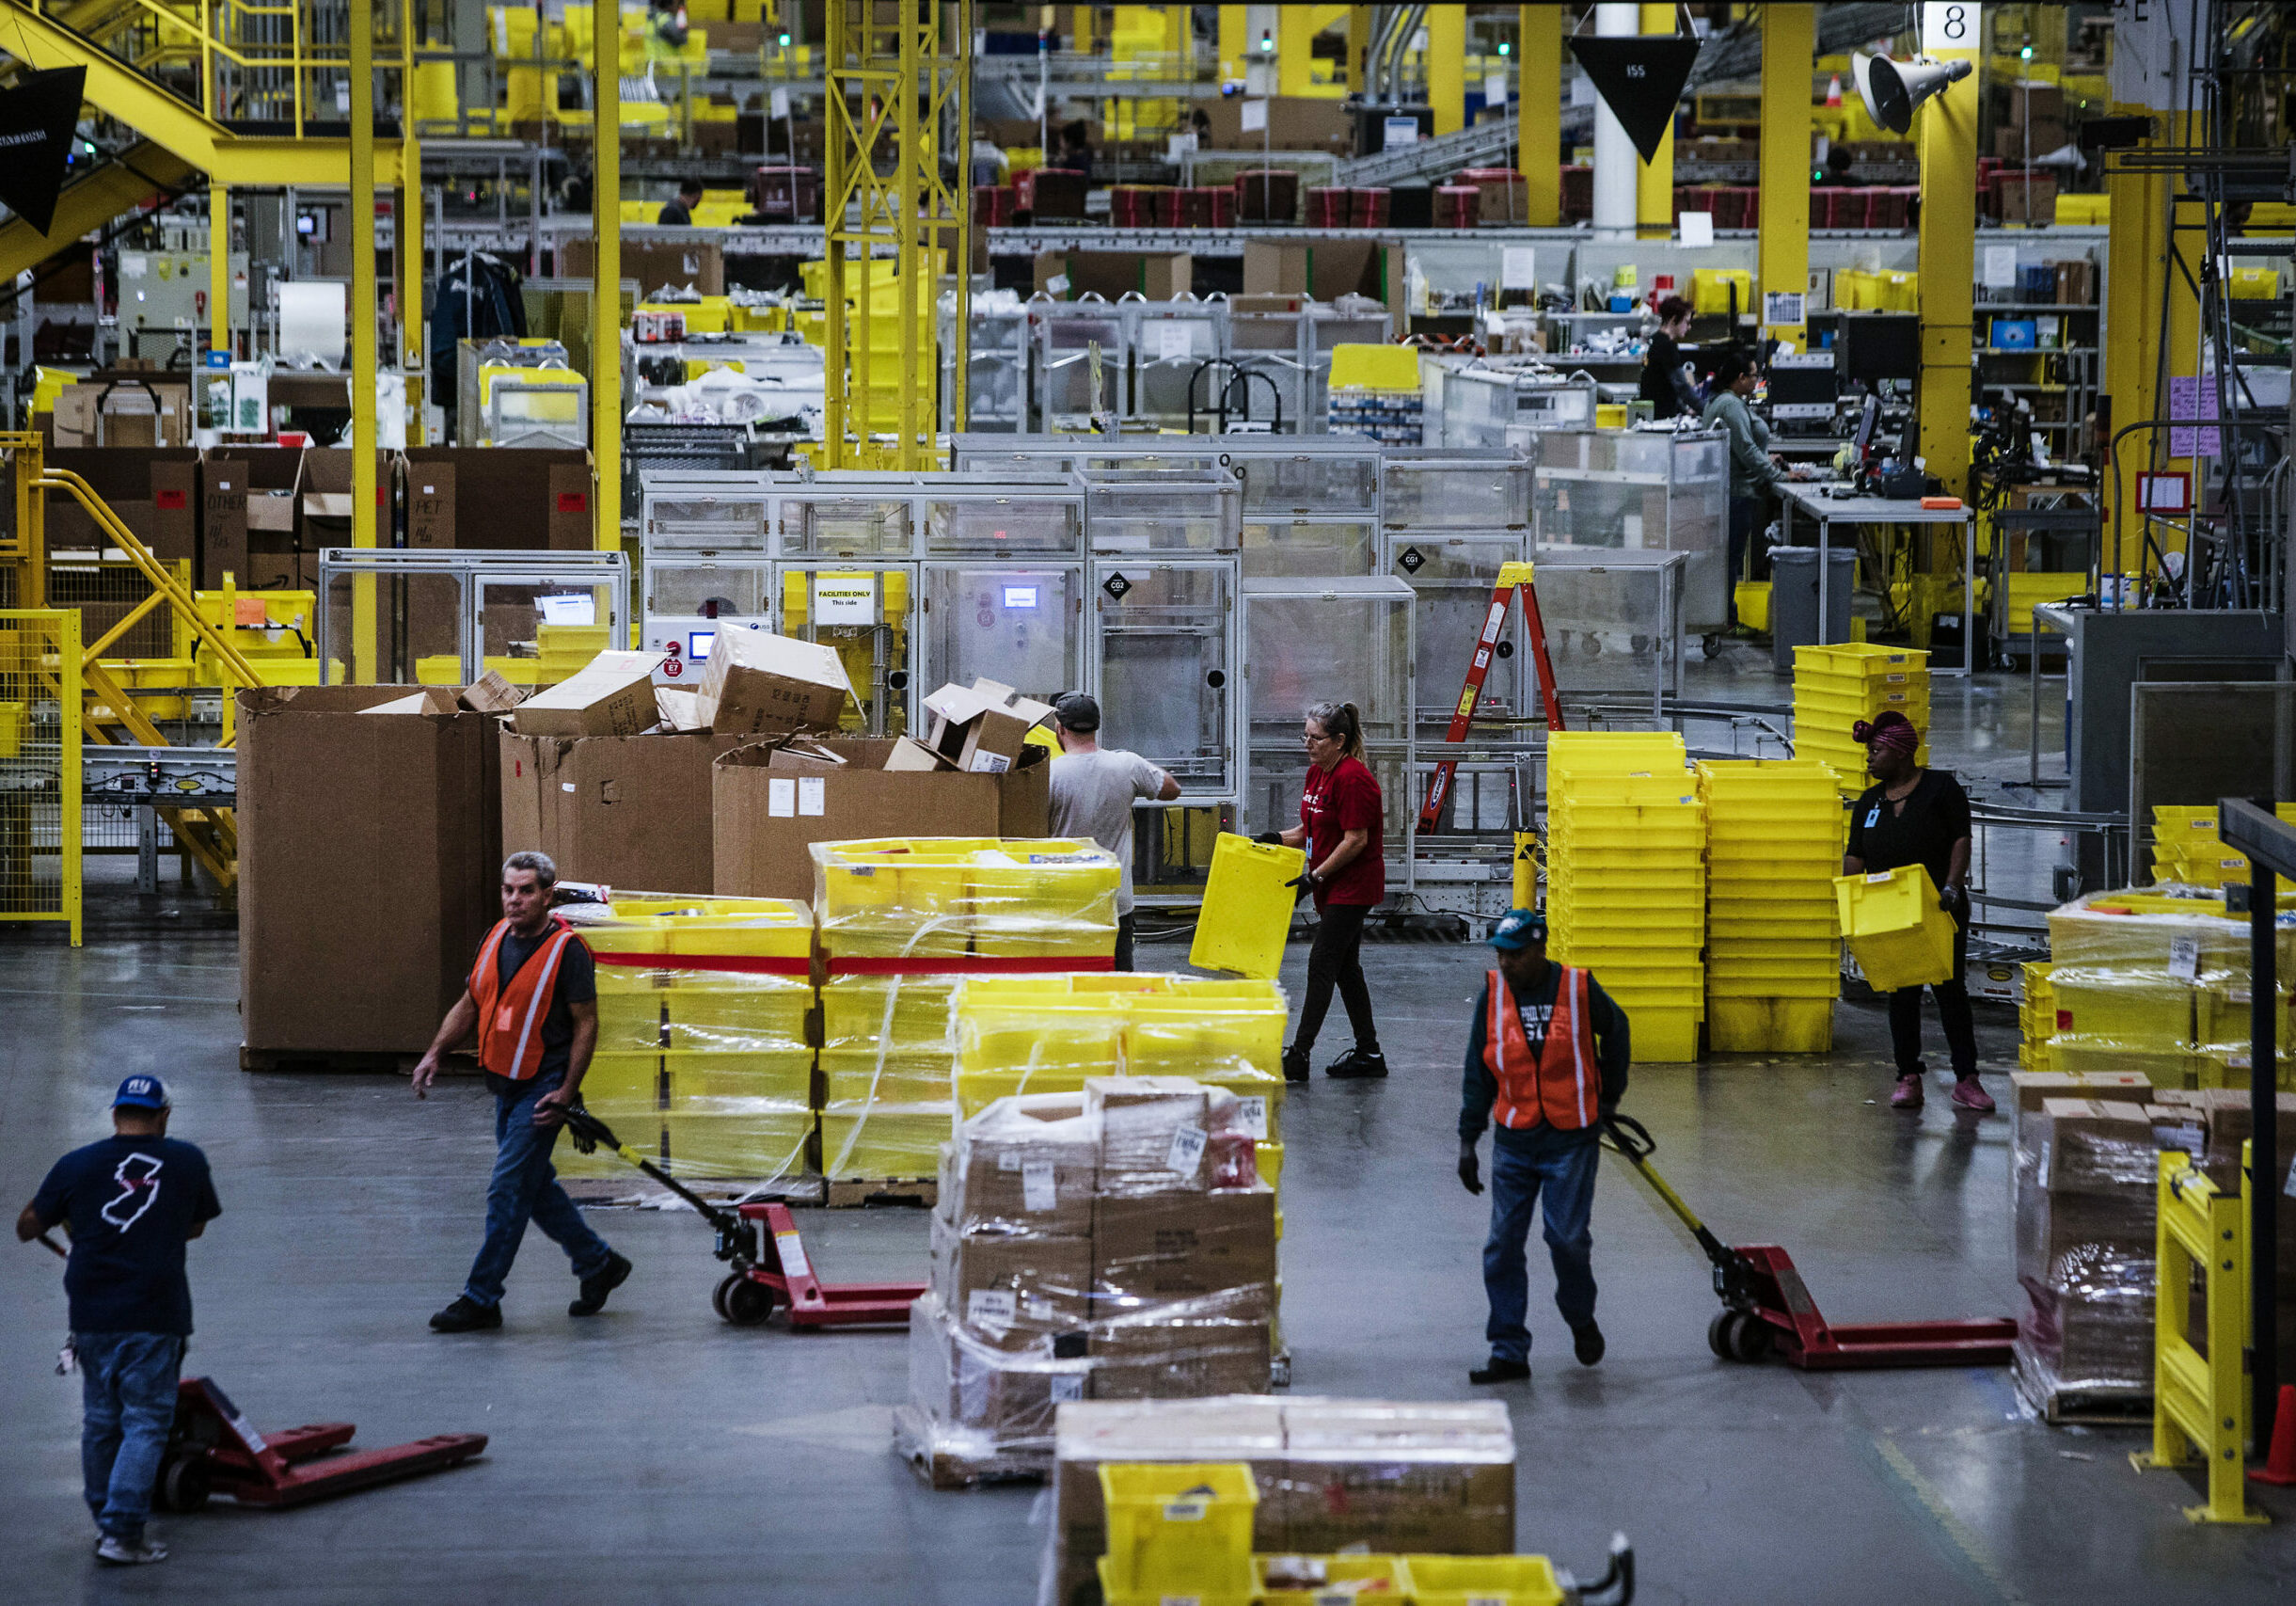 Employees pull pallet trucks at the Amazon.com Inc. fulfillment center in Robbinsville, New Jersey, U.S., on Monday, Nov. 27, 2017. The holiday shopping season is off to a strong start and retailers appear to be continuing the momentum today --CyberMonday-- the biggest online spending day of the year. Photographer: Victor J. Blue/Bloomberg via Getty Images